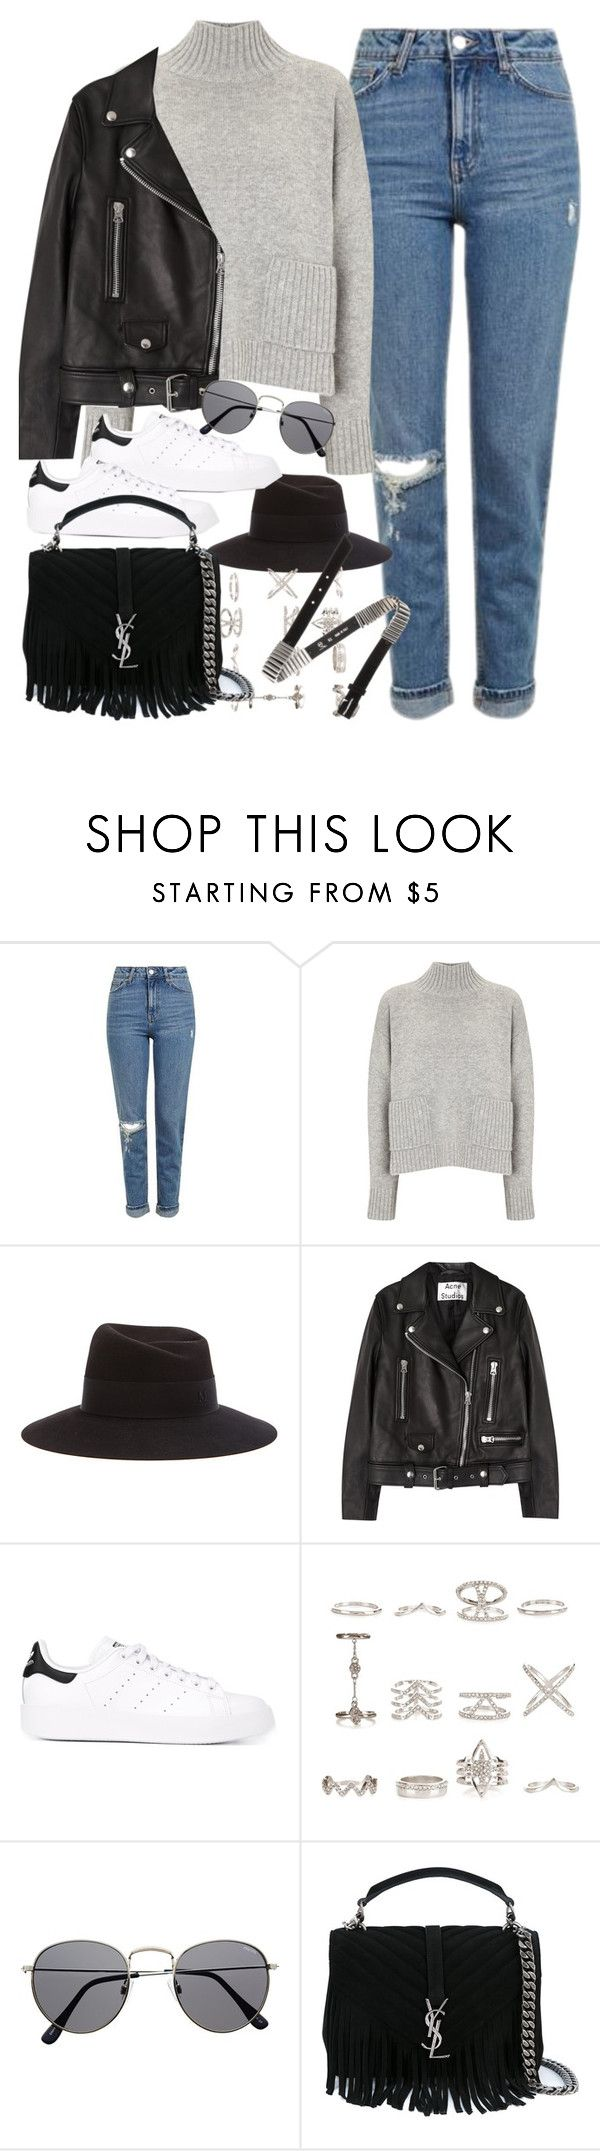 """""""Outfit with mom jeans"""" by ferned ❤ liked on Polyvore featuring Topshop, Frame, Maison Michel, Acne Studios, adidas Originals, New Look, Yves Saint Laurent and McQ by Alexander McQueen"""